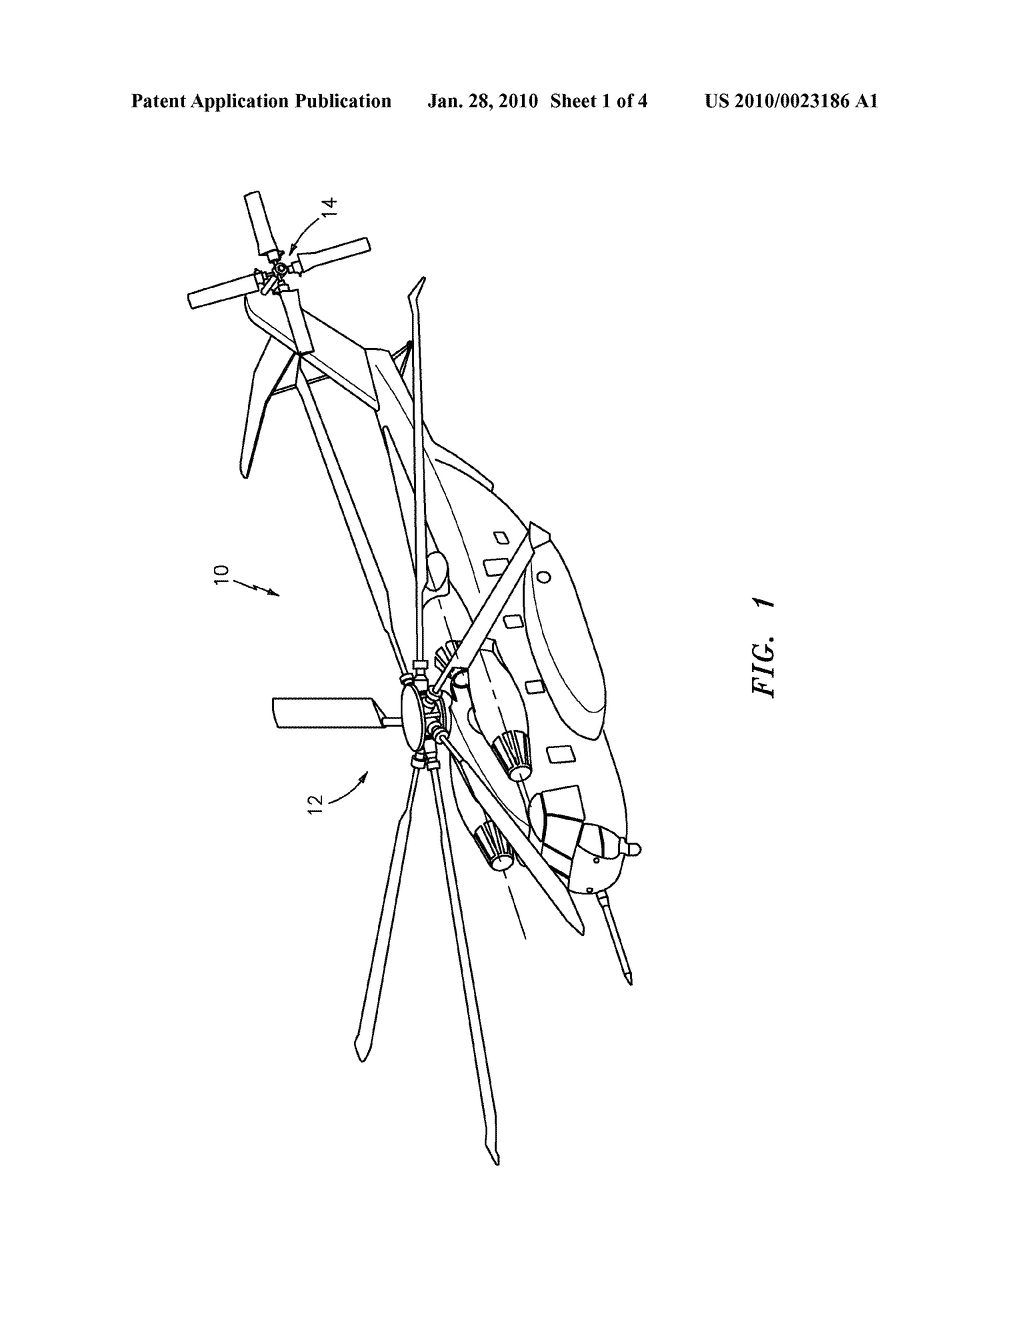 FLY-BY-WIRE FLIGHT CONTROL SYSTEM WITH ELECTRONIC LEAD/LAG DAMPER ALGORITHM  - diagram, schematic, and image 02